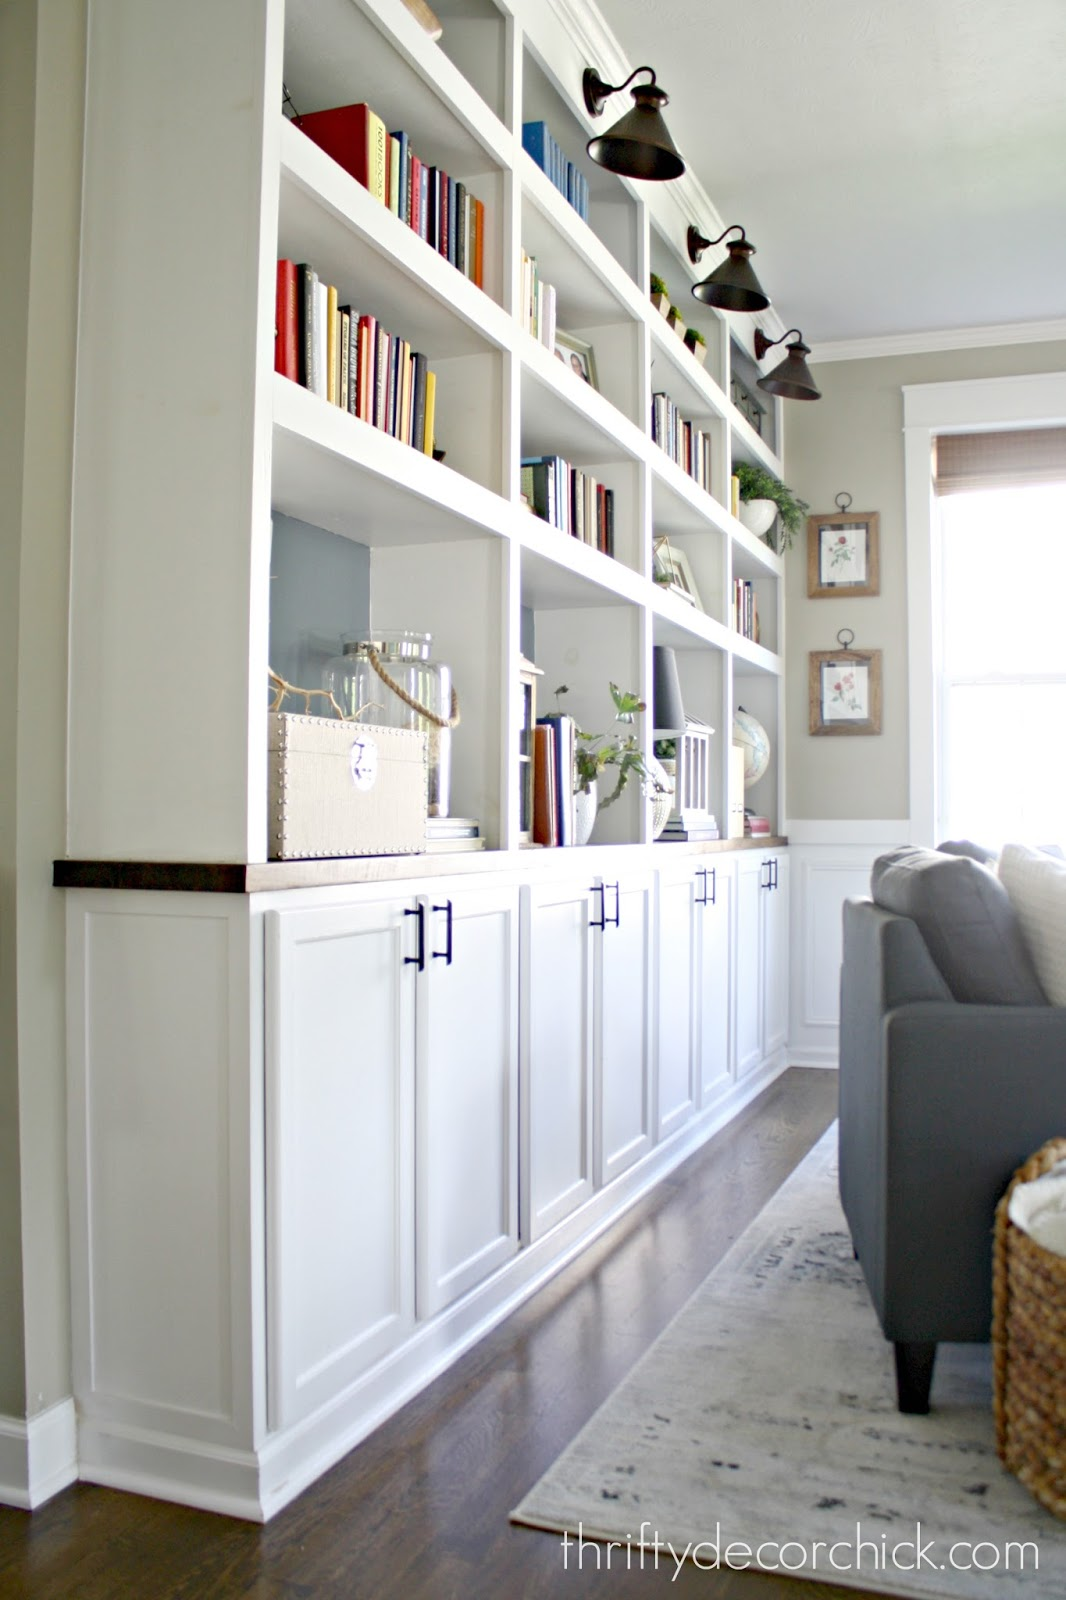 How to create custom built ins with kitchen cabinets from ...